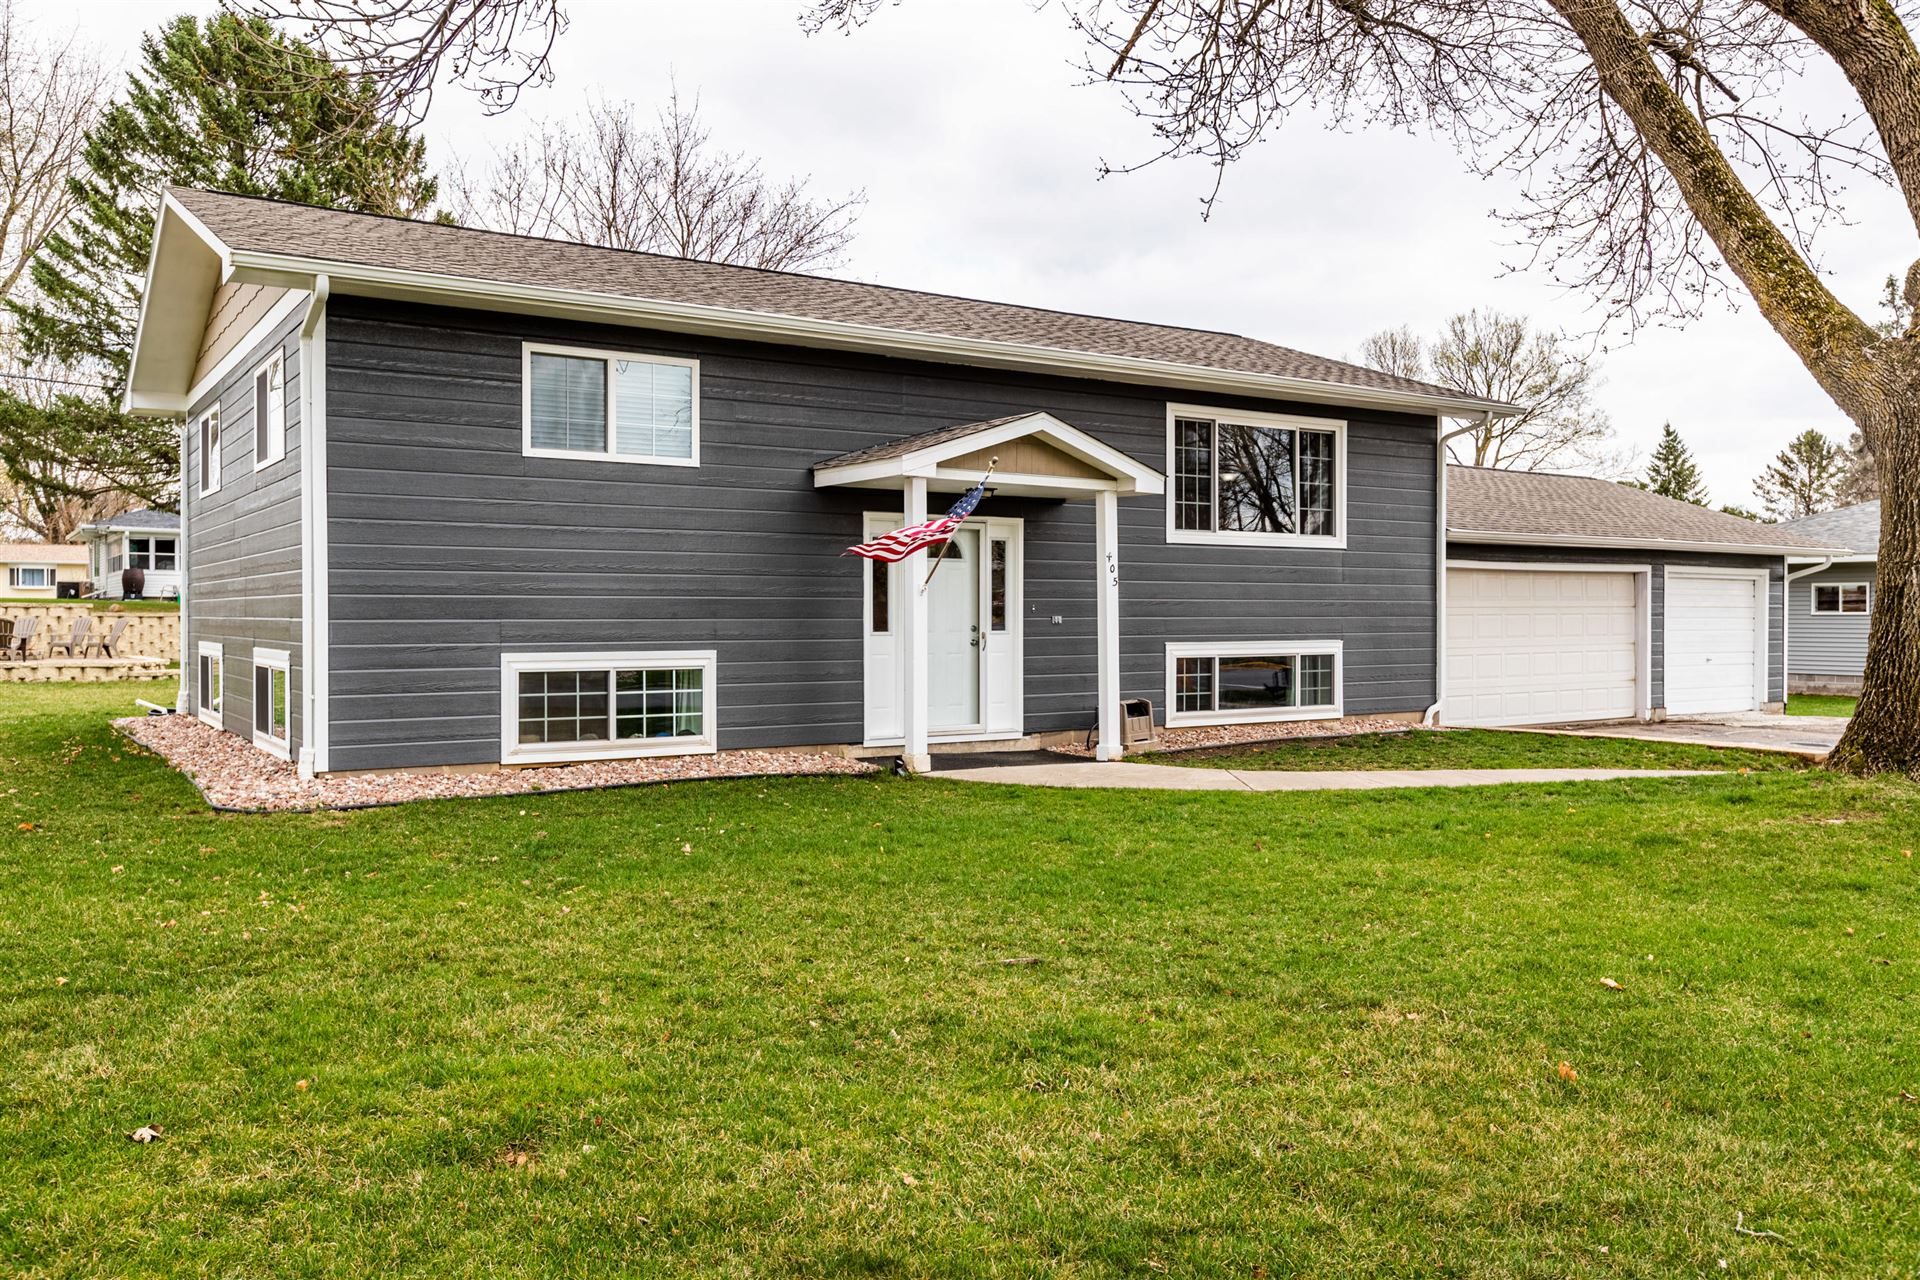 405 Long Coulee Rd, Holmen, WI 54636 - MLS#: 1734295